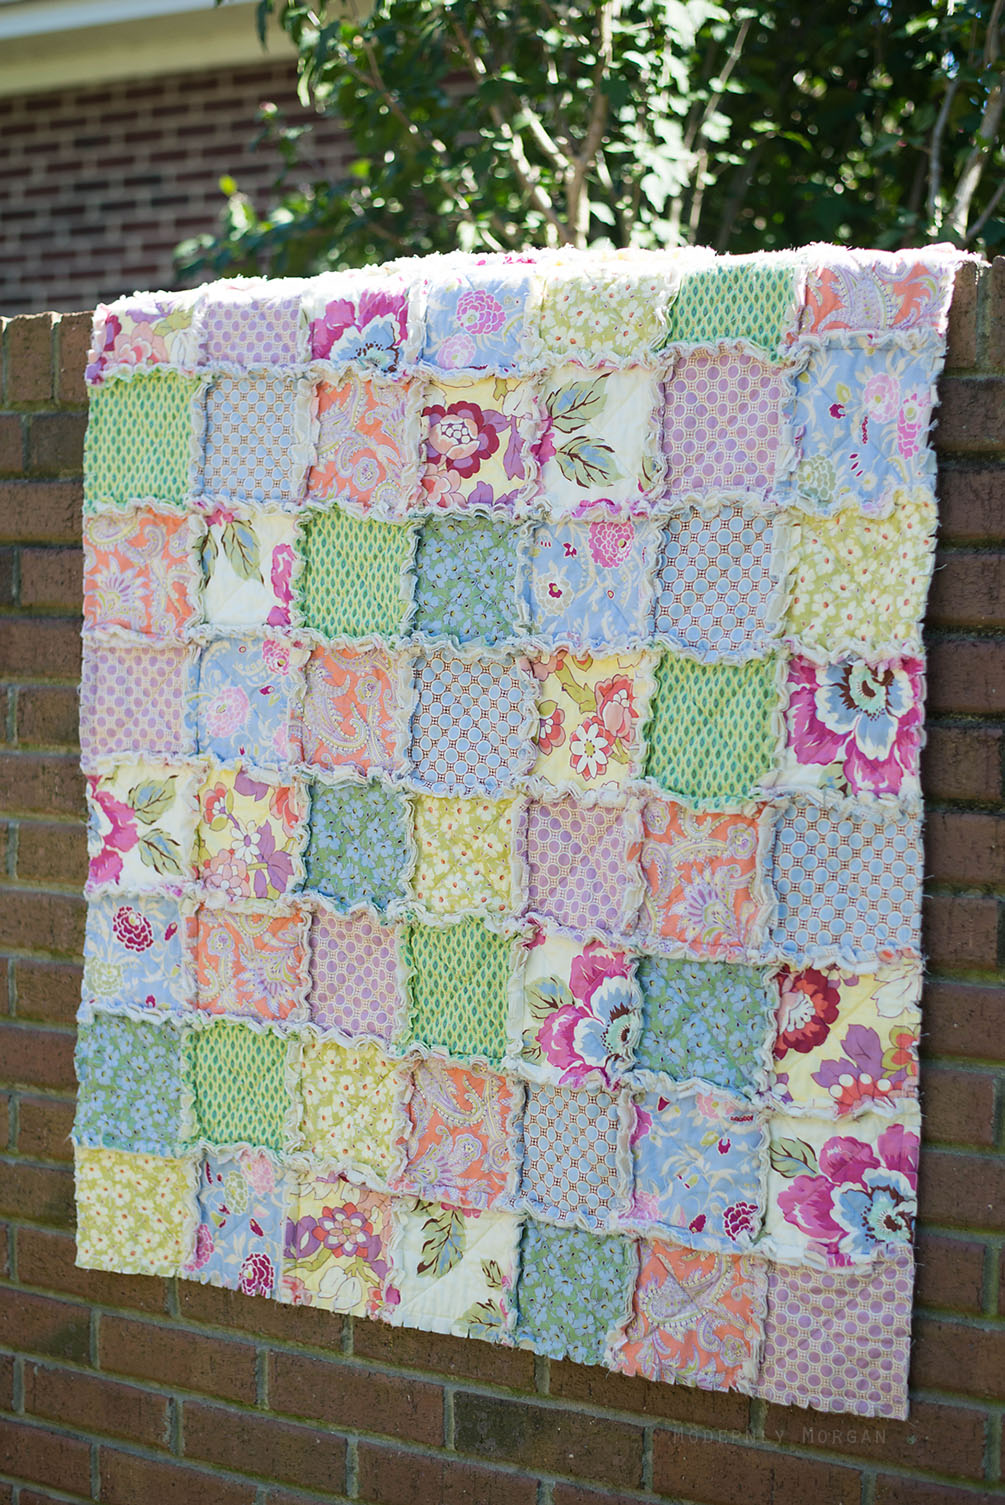 Rustic Rag Quilt Tutorial - Modernly Morgan : easy first quilt - Adamdwight.com